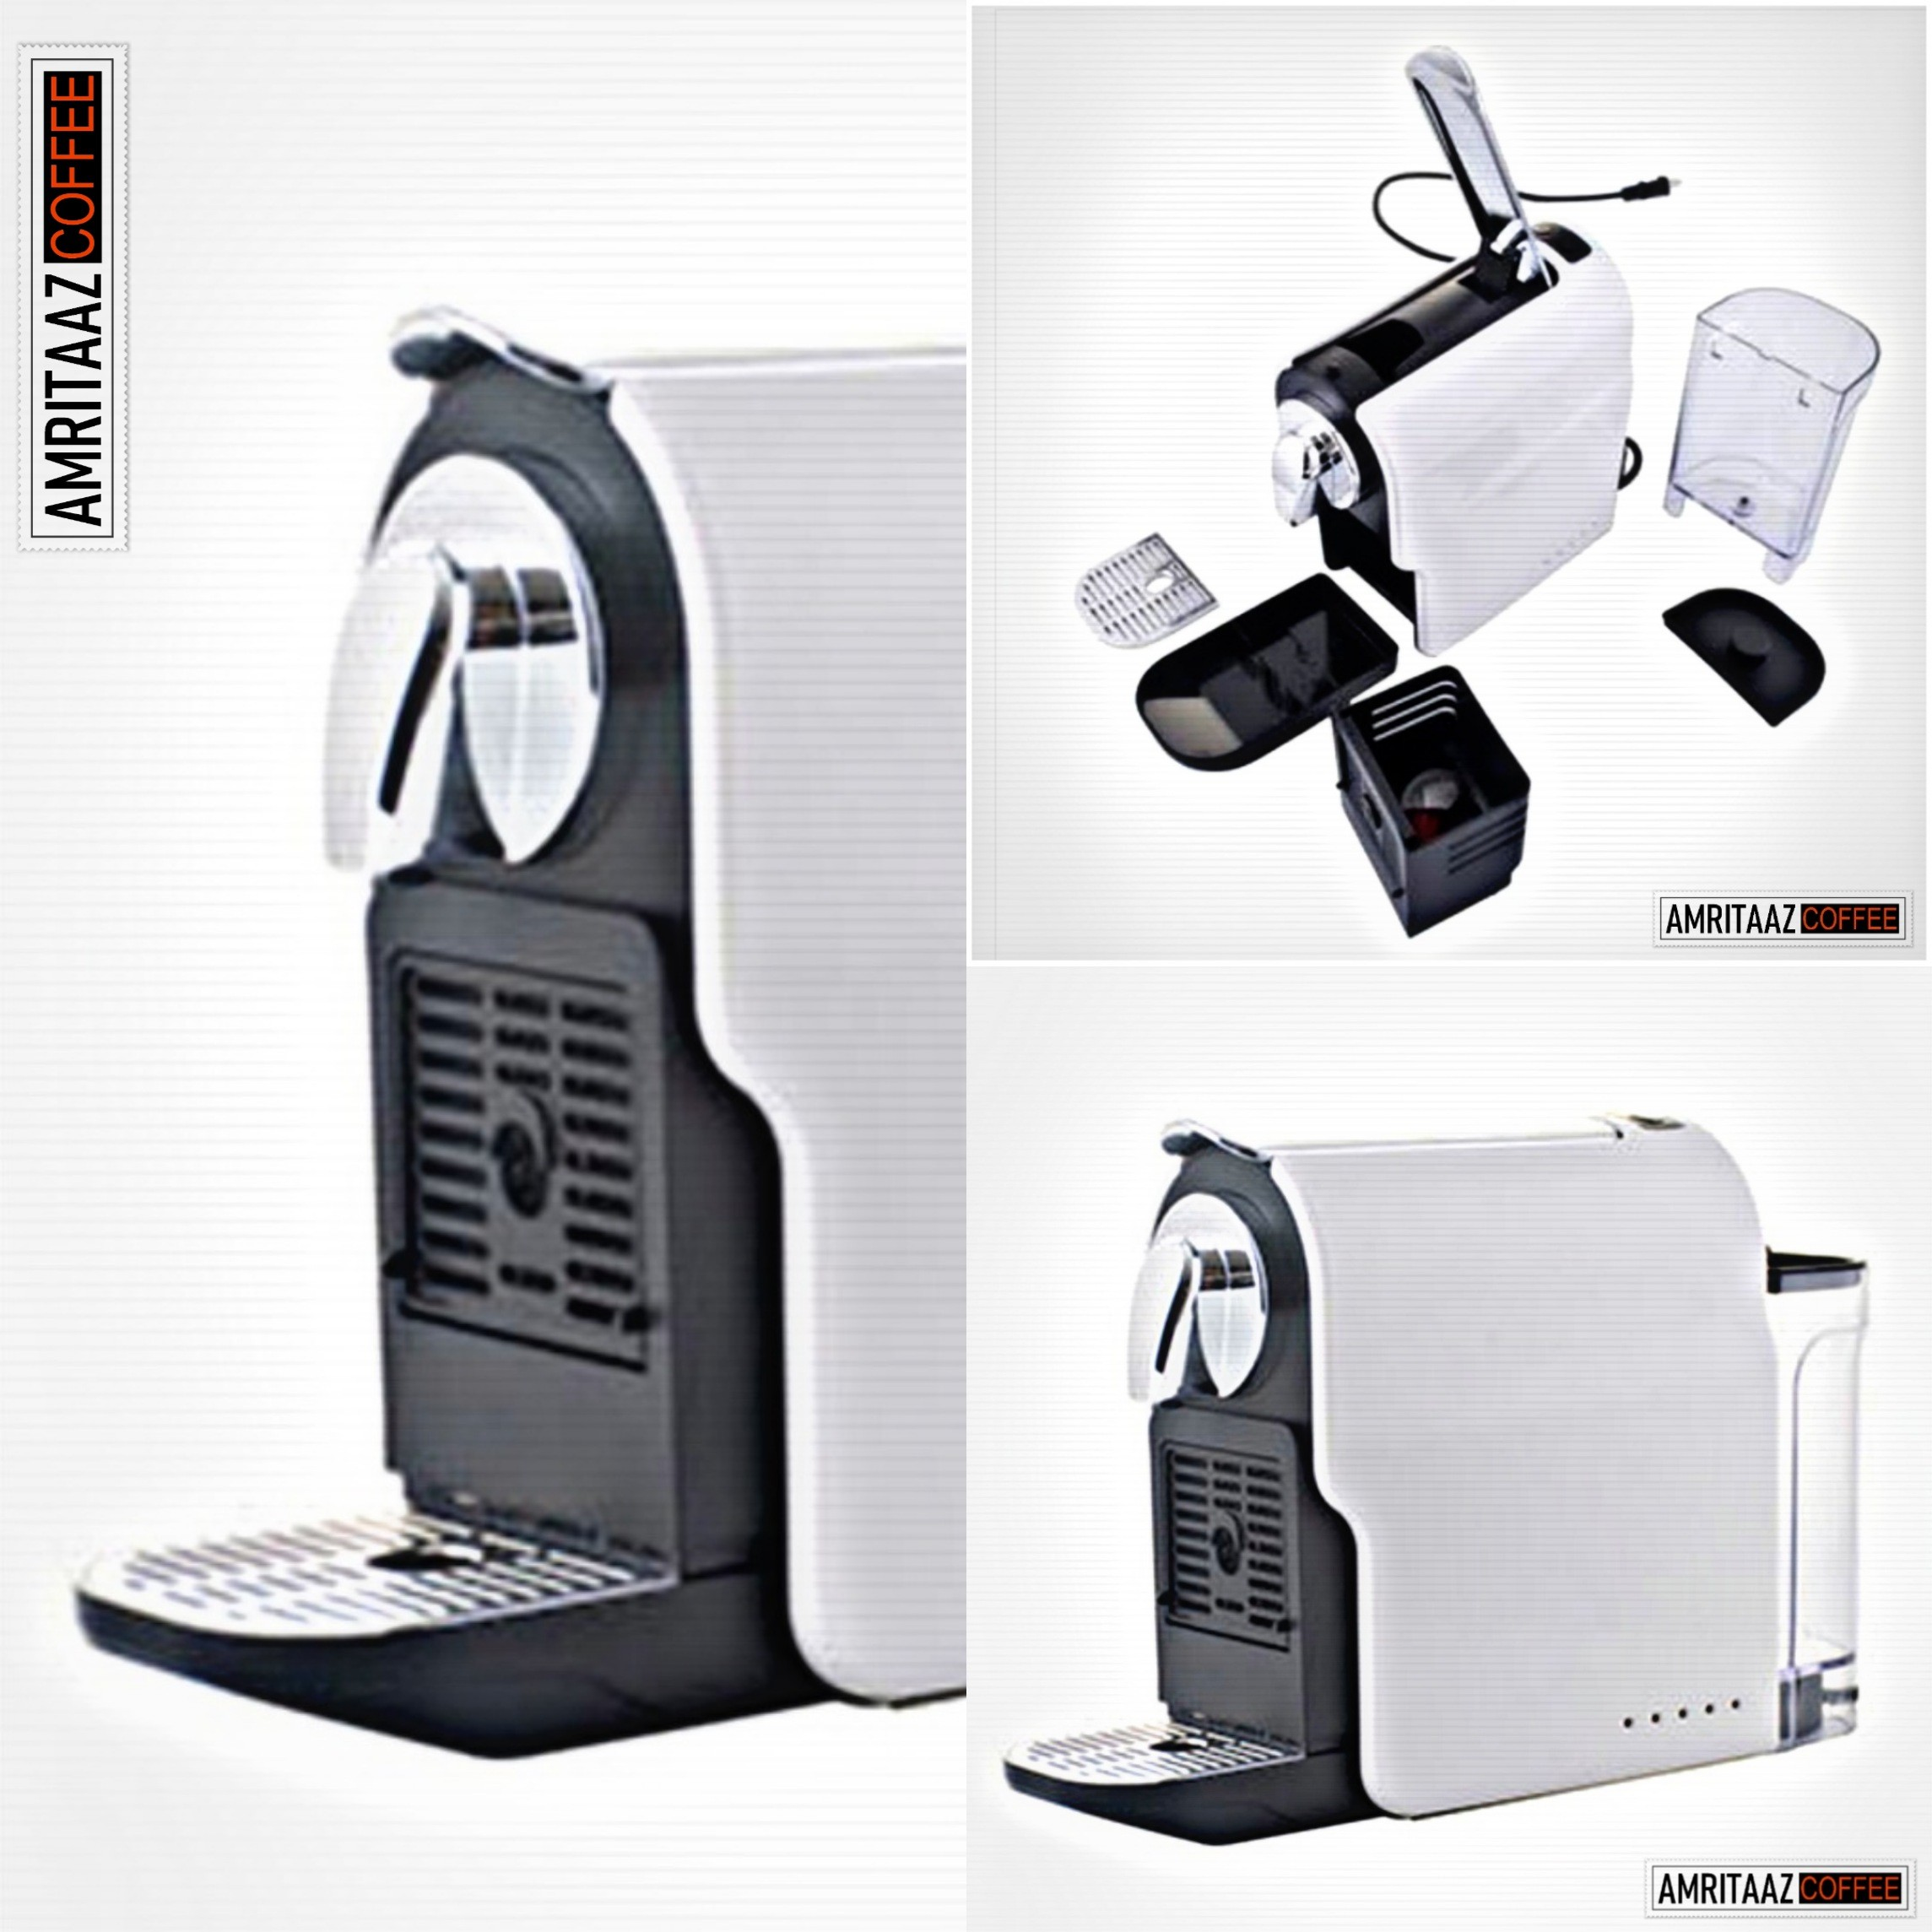 FREE COFFEE MACHINE WITH AMRITAAZ COFFEE NESPRESSO COMPATIBLE CAPSULE PODS - ORDER NOW